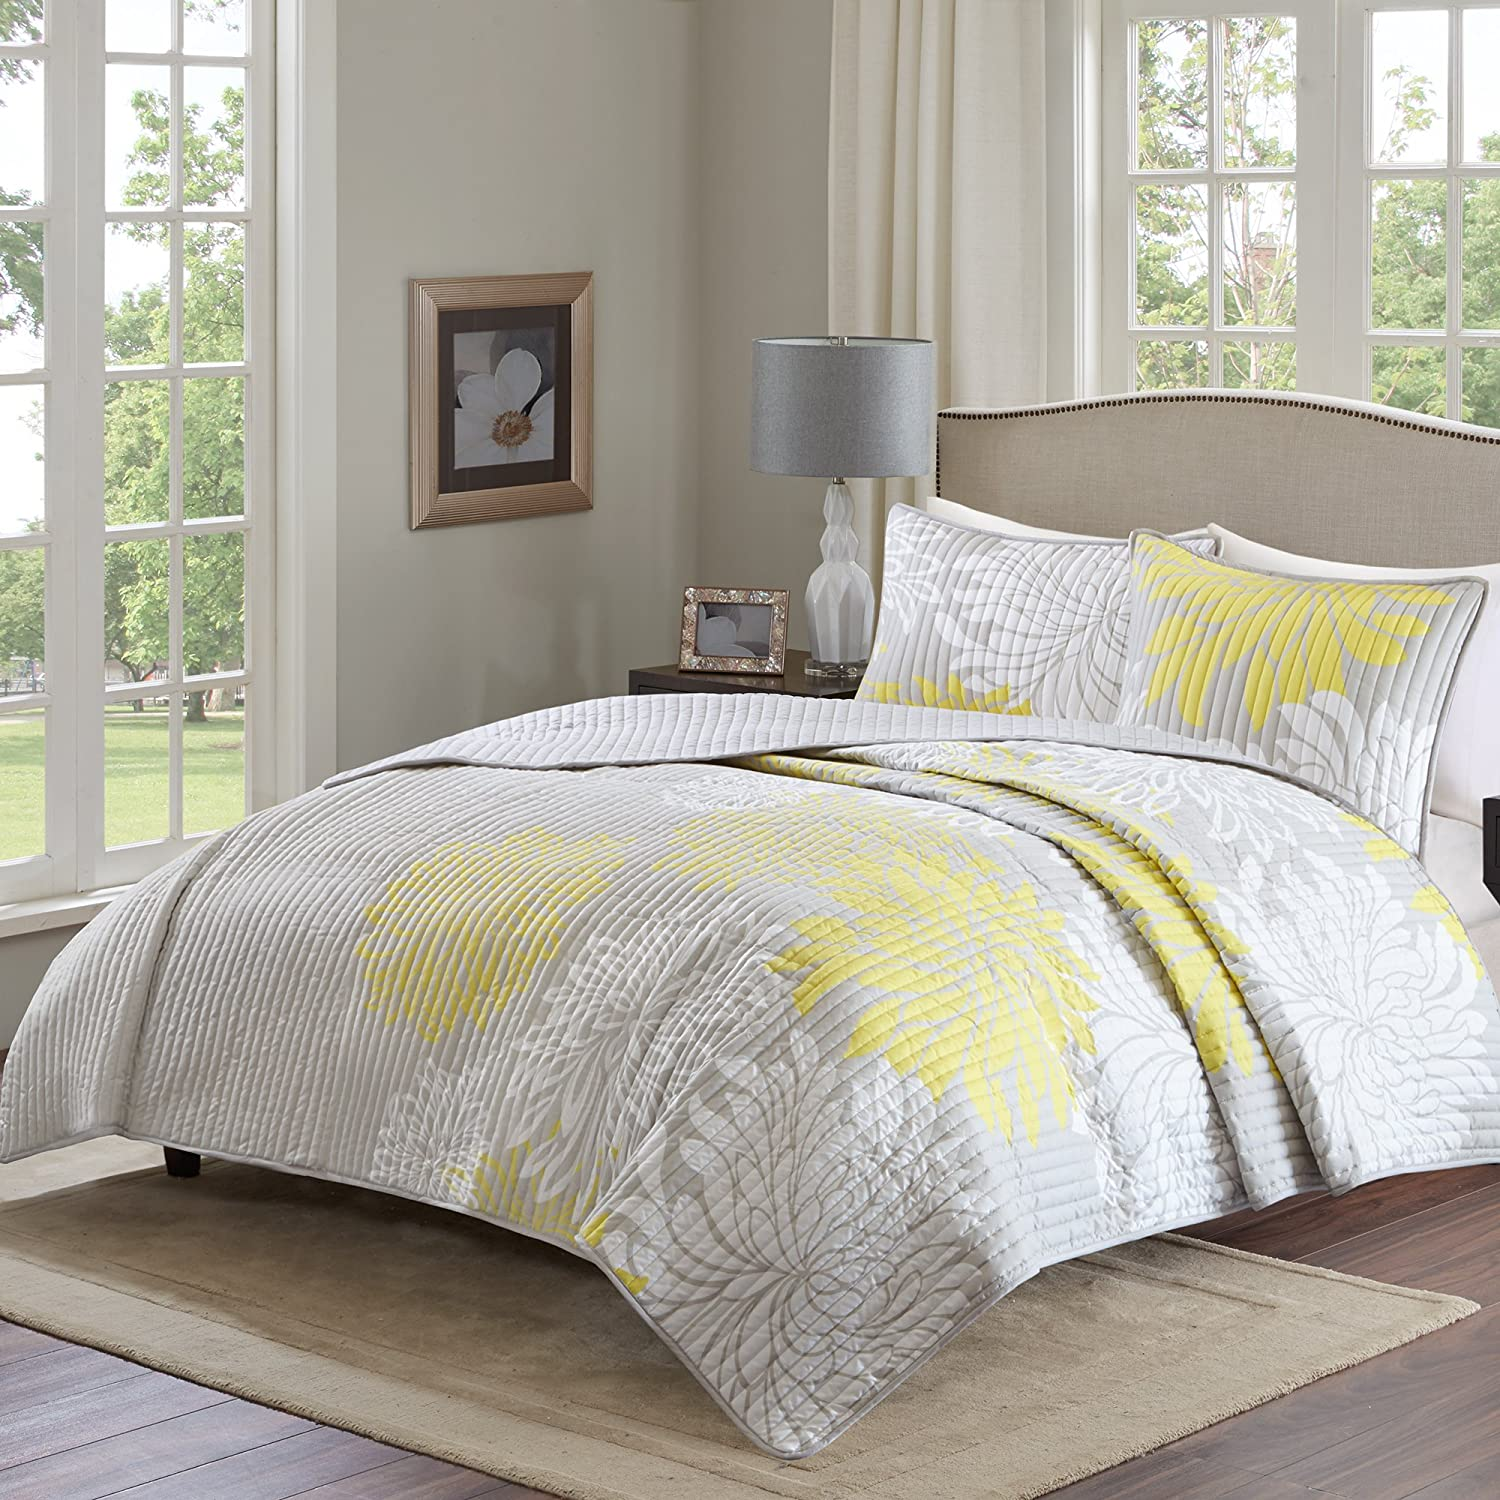 """Comfort Spaces Enya 3 Piece All Season, Lightweight Coverlet, Cozy Bedding, Matching Shams, Decorative Pillows, Full/Queen(90""""x90""""), Yellow"""